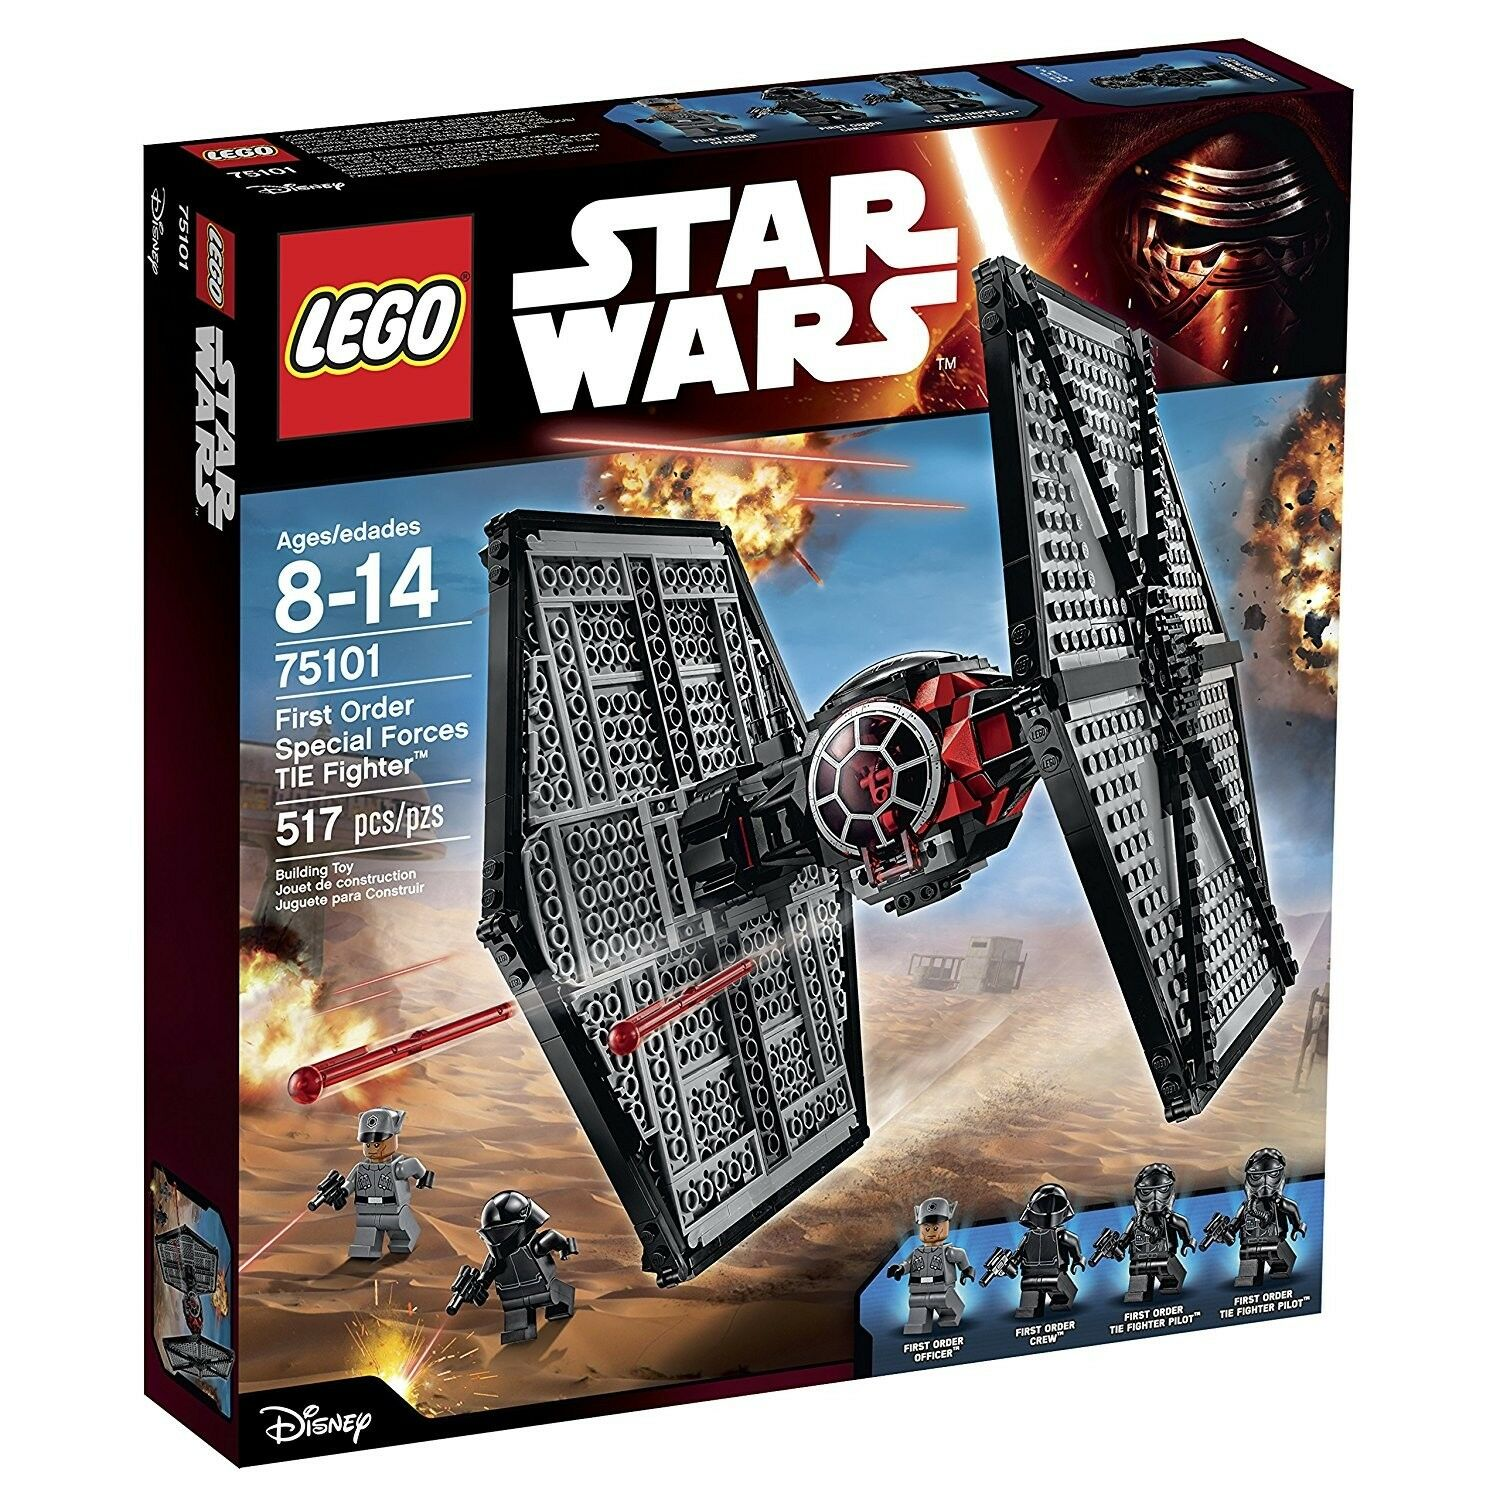 LEGO STAR WARS   75101 First Order Special Forces TIE Fighter  BNIB NEW SEALED✔